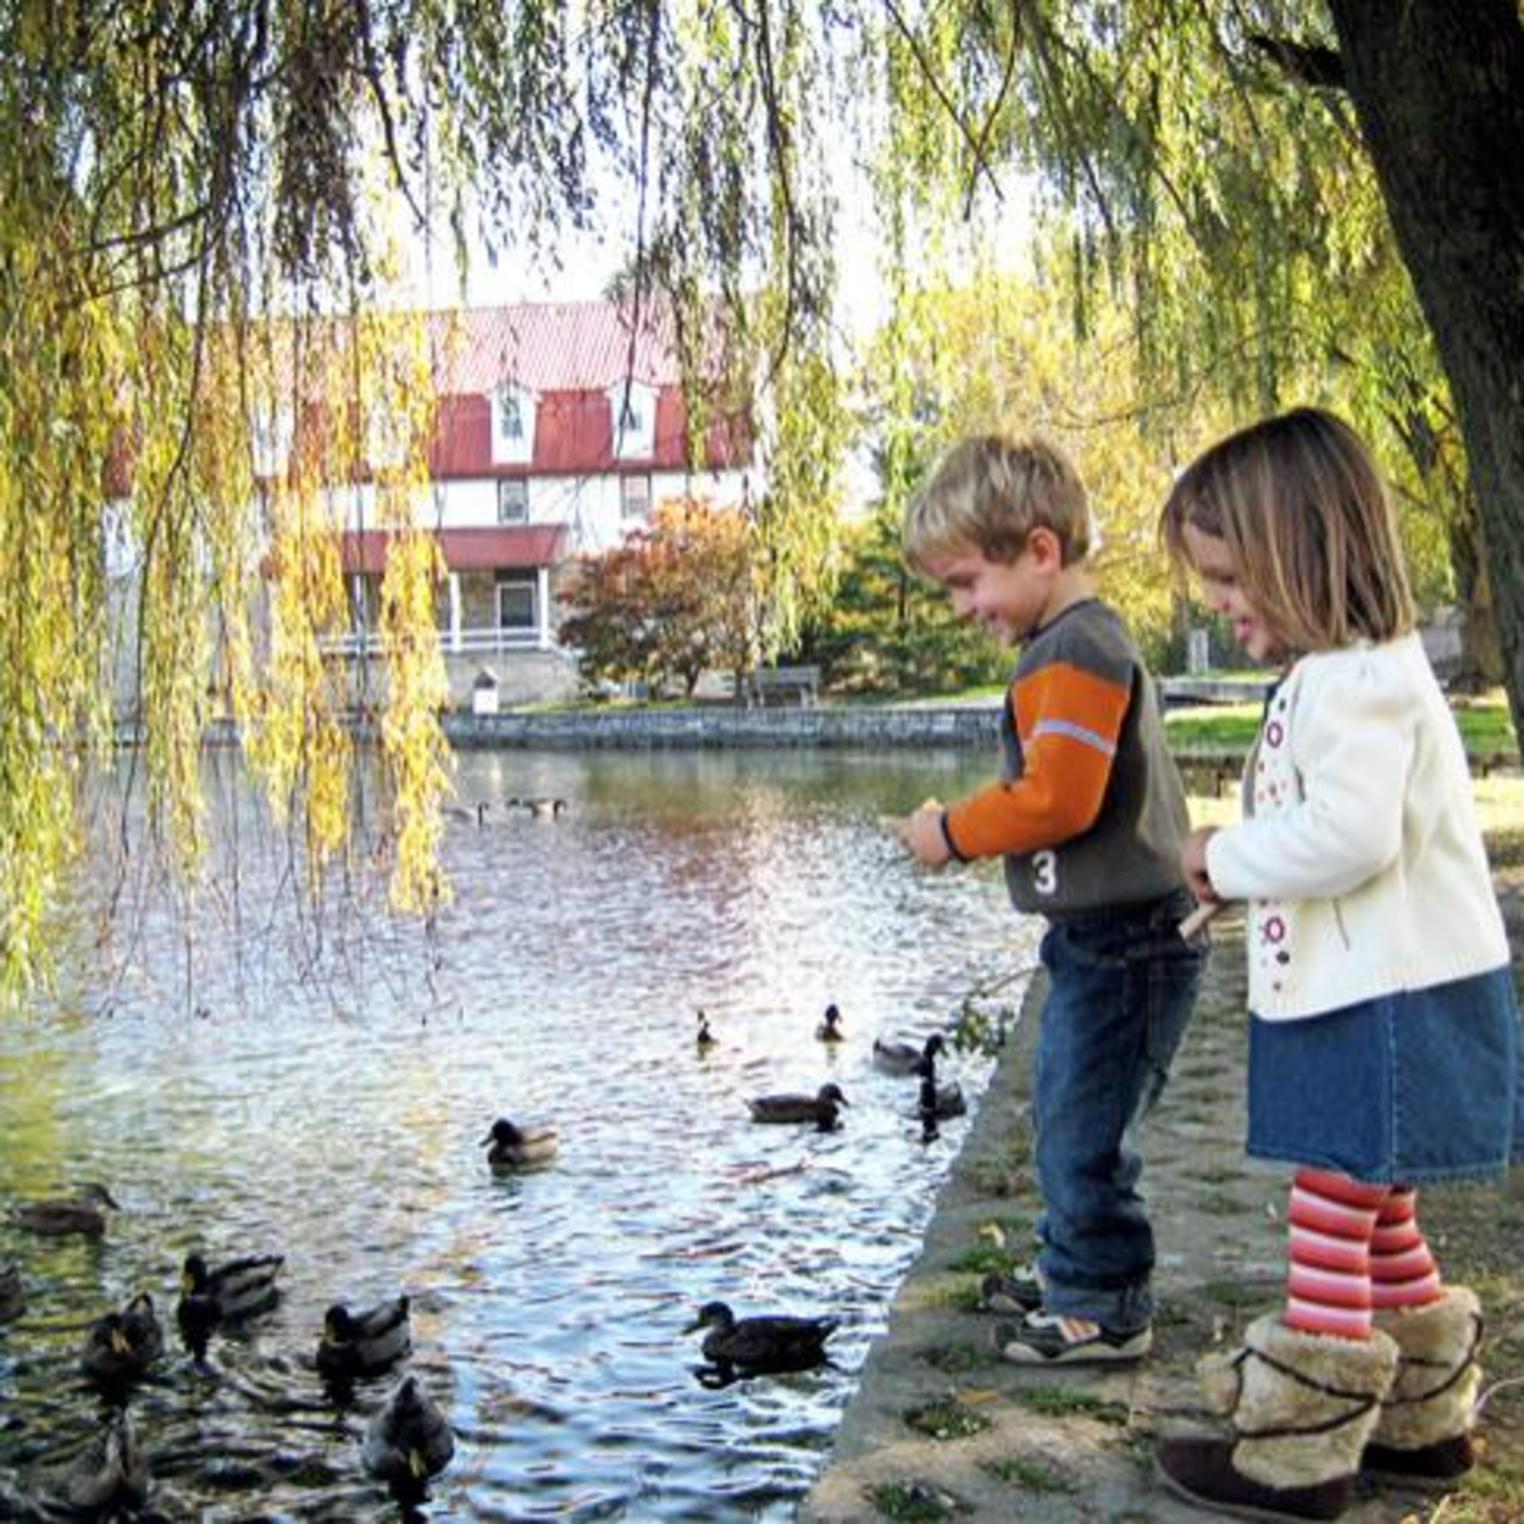 Feeding the ducks at Children's Lake